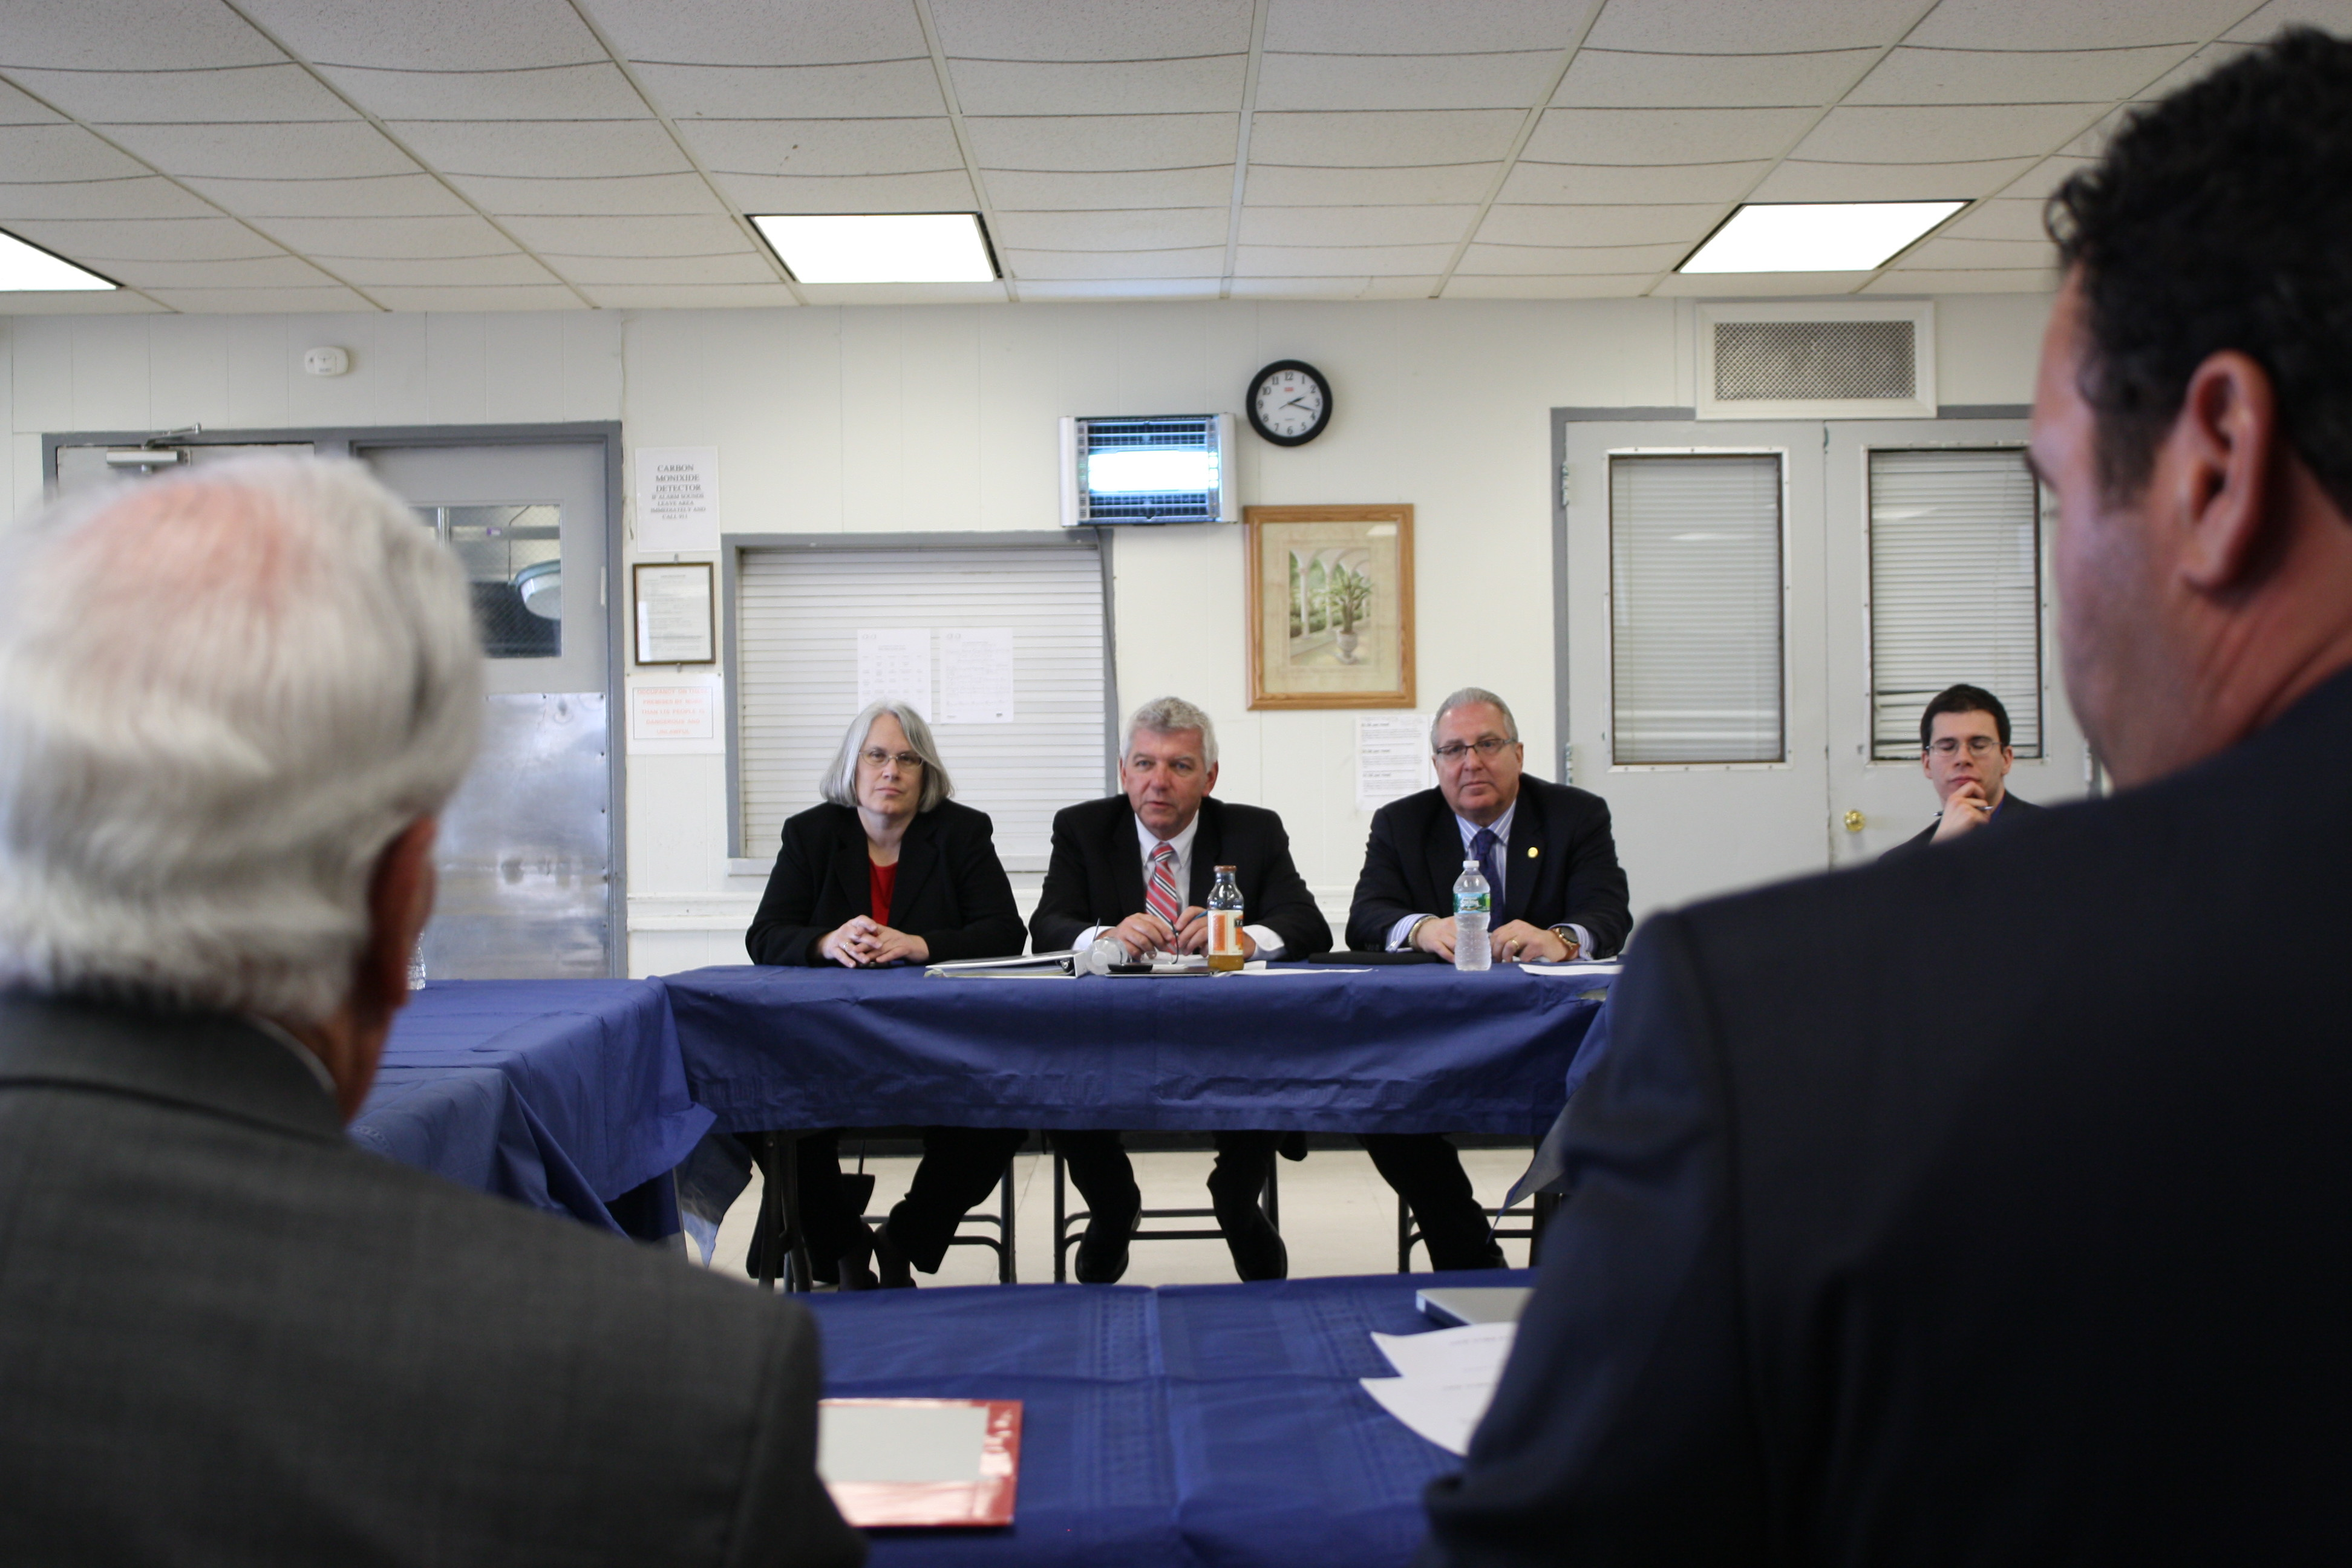 Assemblyman Steven Cymbrowitz (right), a member of the Assembly's Insurance Committee, joins committee chair Assemblyman Kevin Cahill and Assemblywoman Helene Weinstein at a roundtable discussion on insurance issues in the wake of Superstorm Sandy.